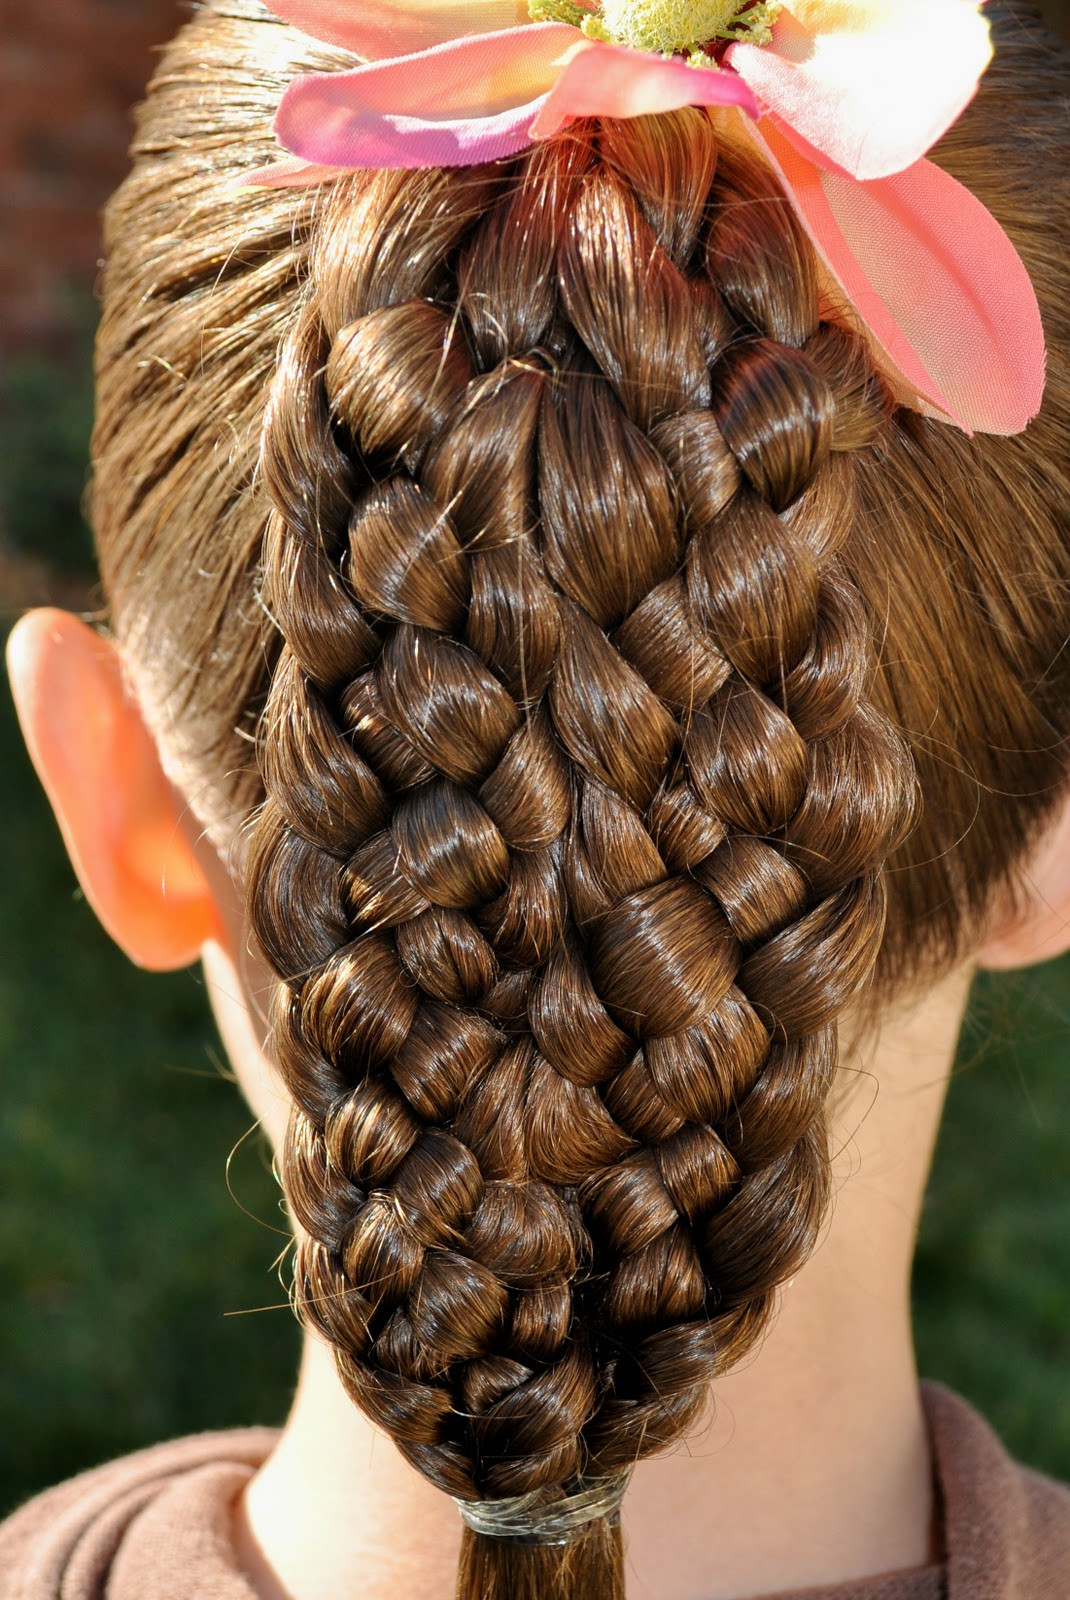 Best ideas about 5 Braids Hairstyle . Save or Pin 30 Elegant 5 Strand Braid Hairstyles Now.